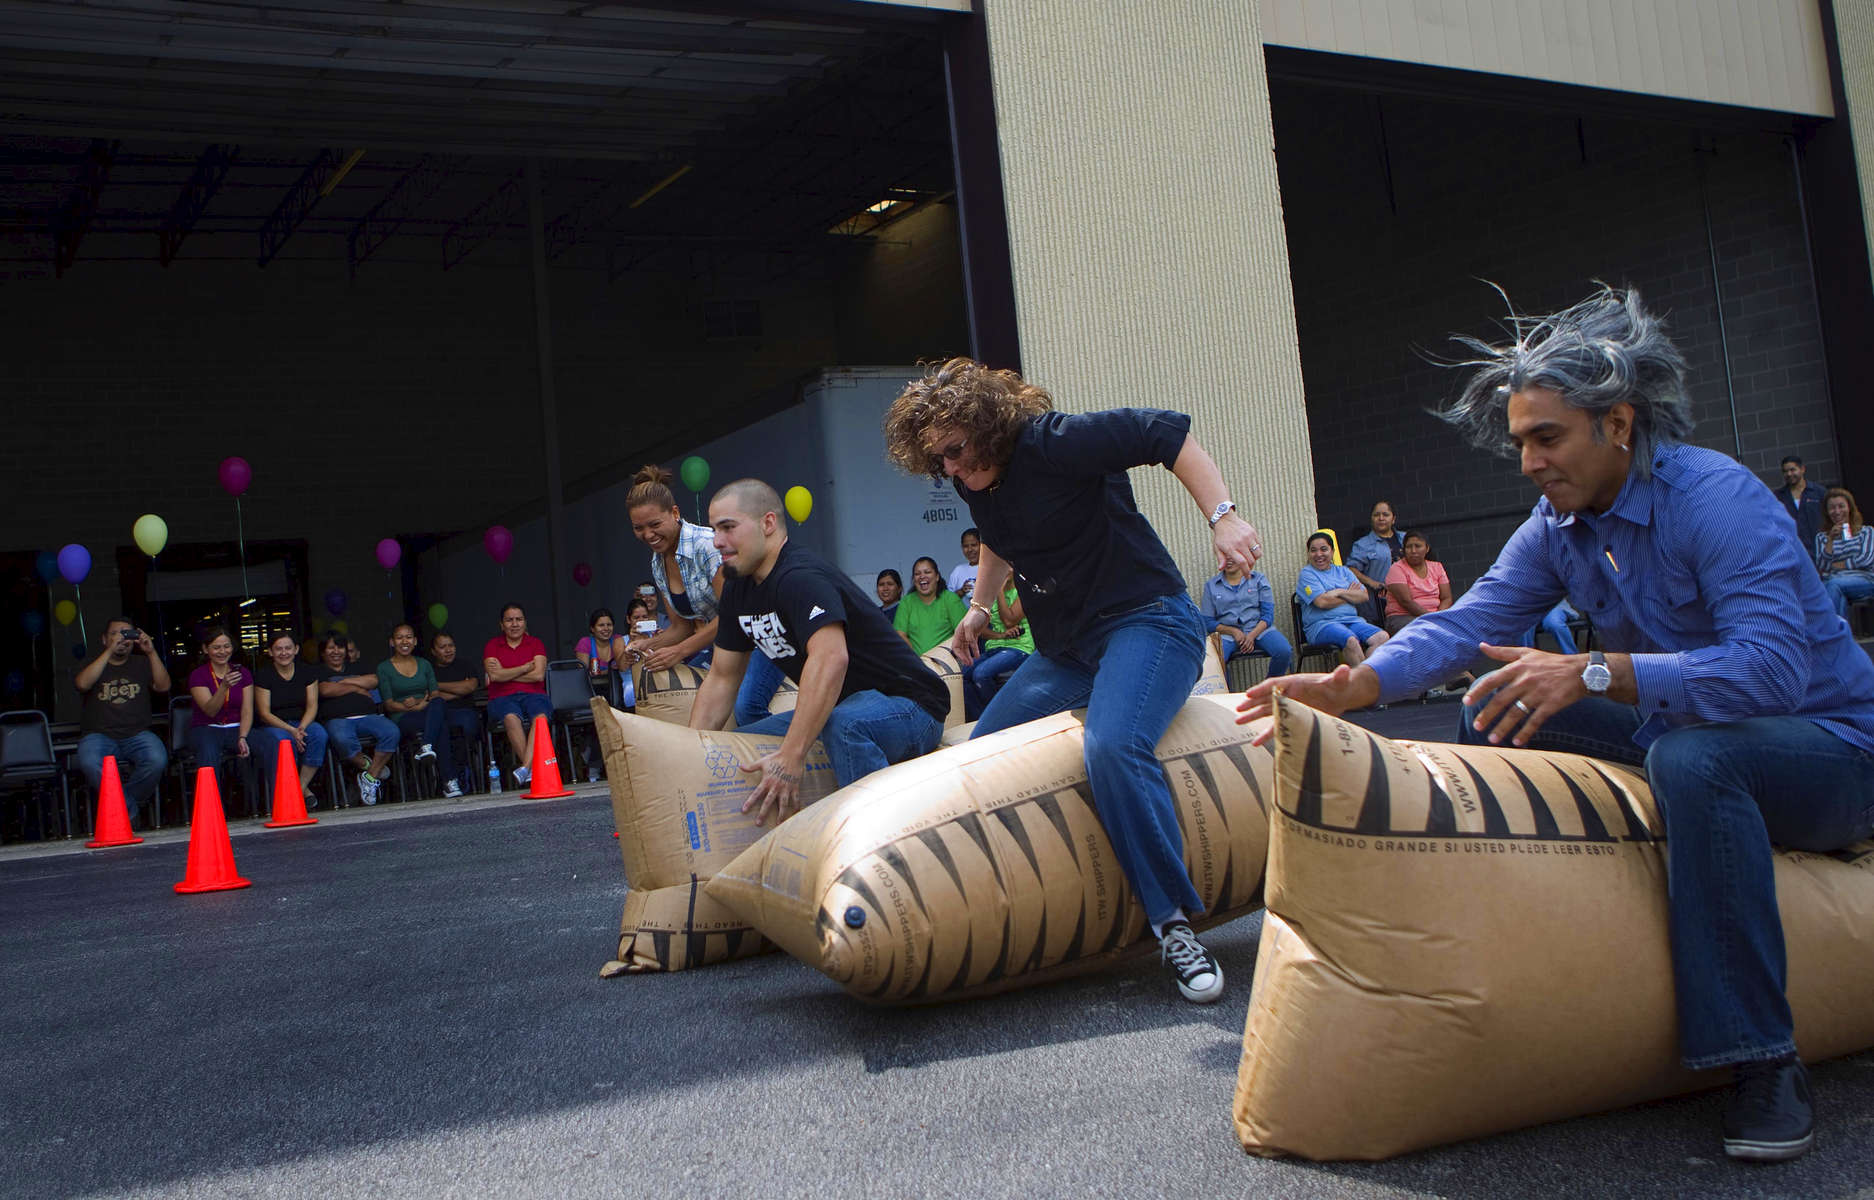 Employees hop on inflated bags during a company picnic festivities at the iD Commerce headquarters.